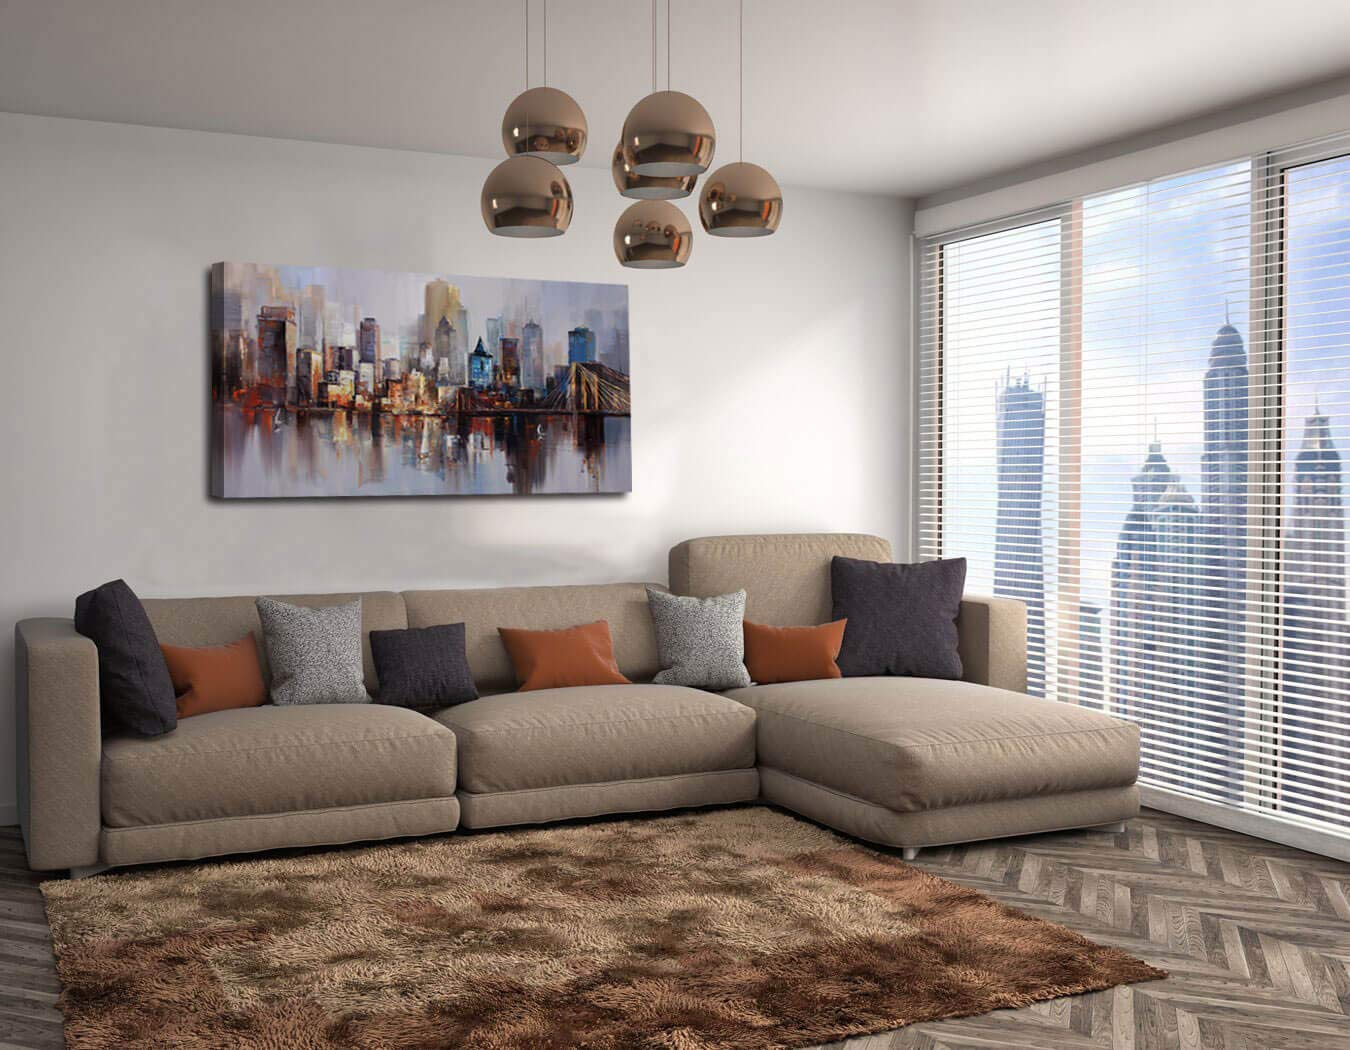 Canvas Wall Art Prints Modern Abstract Cityscape Brooklyn Bridge Painting Framed Extra Large, Colorful New York Skyline Buildings Picture for Living Room Home Office Decor 60 x30 , Original Design